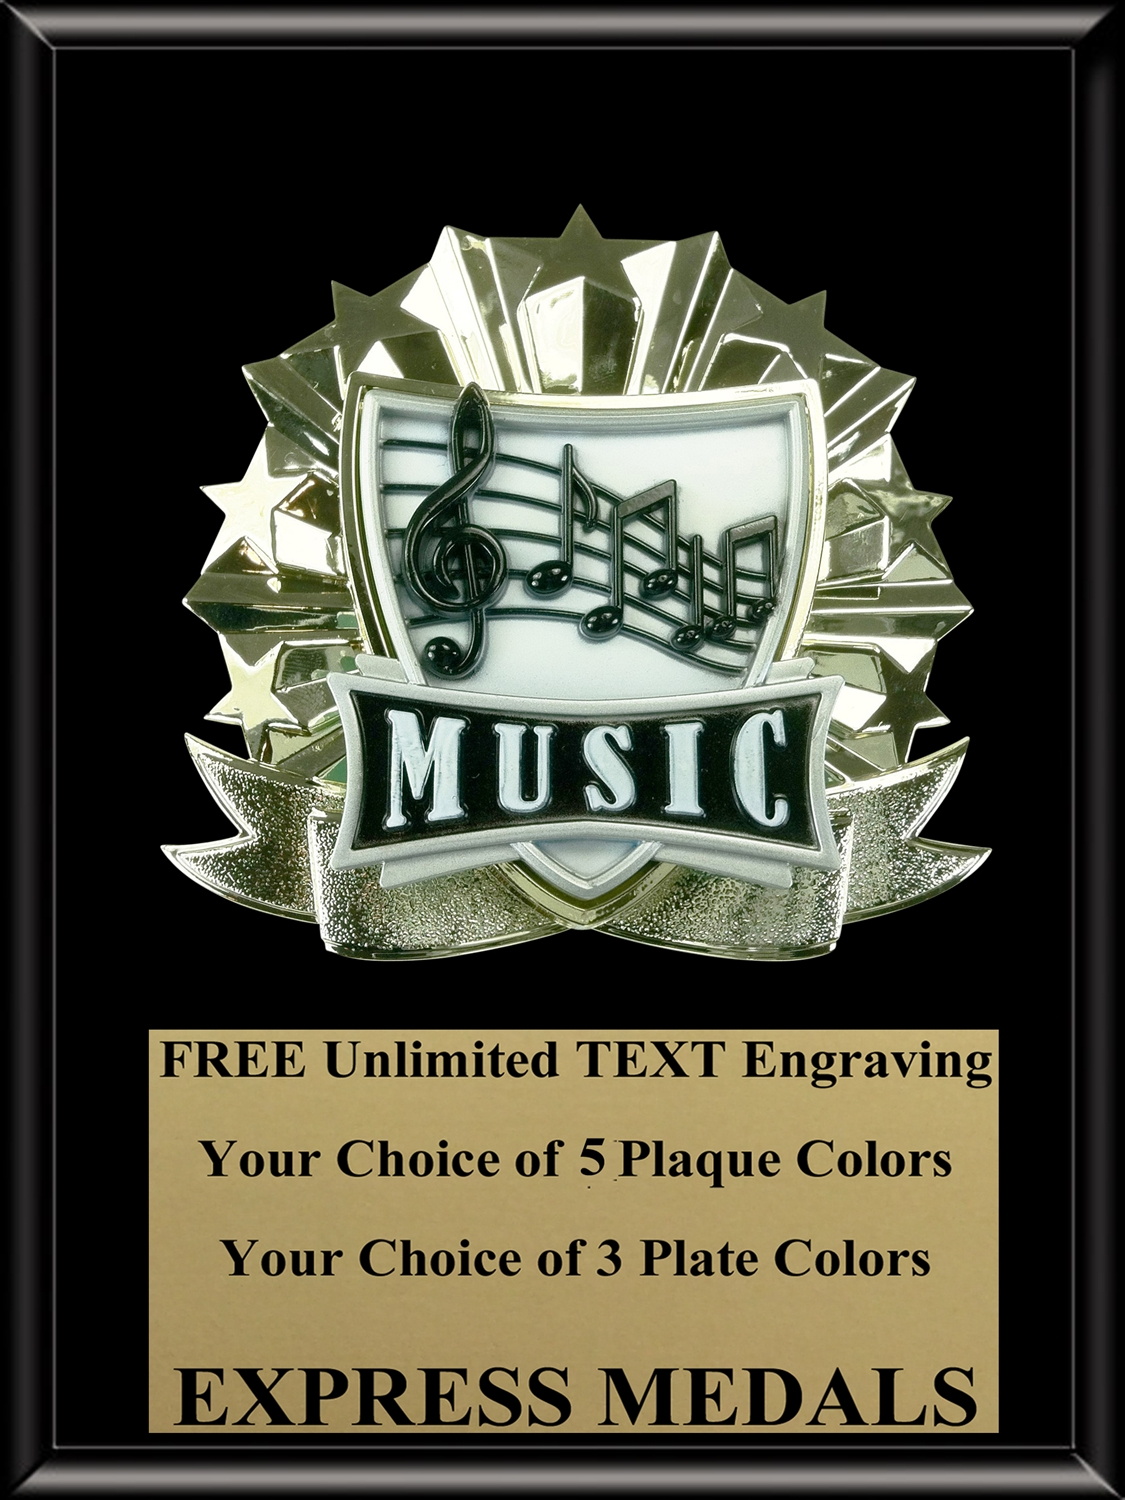 All-Star Music Plaque (4 Sizes) (PM1279)